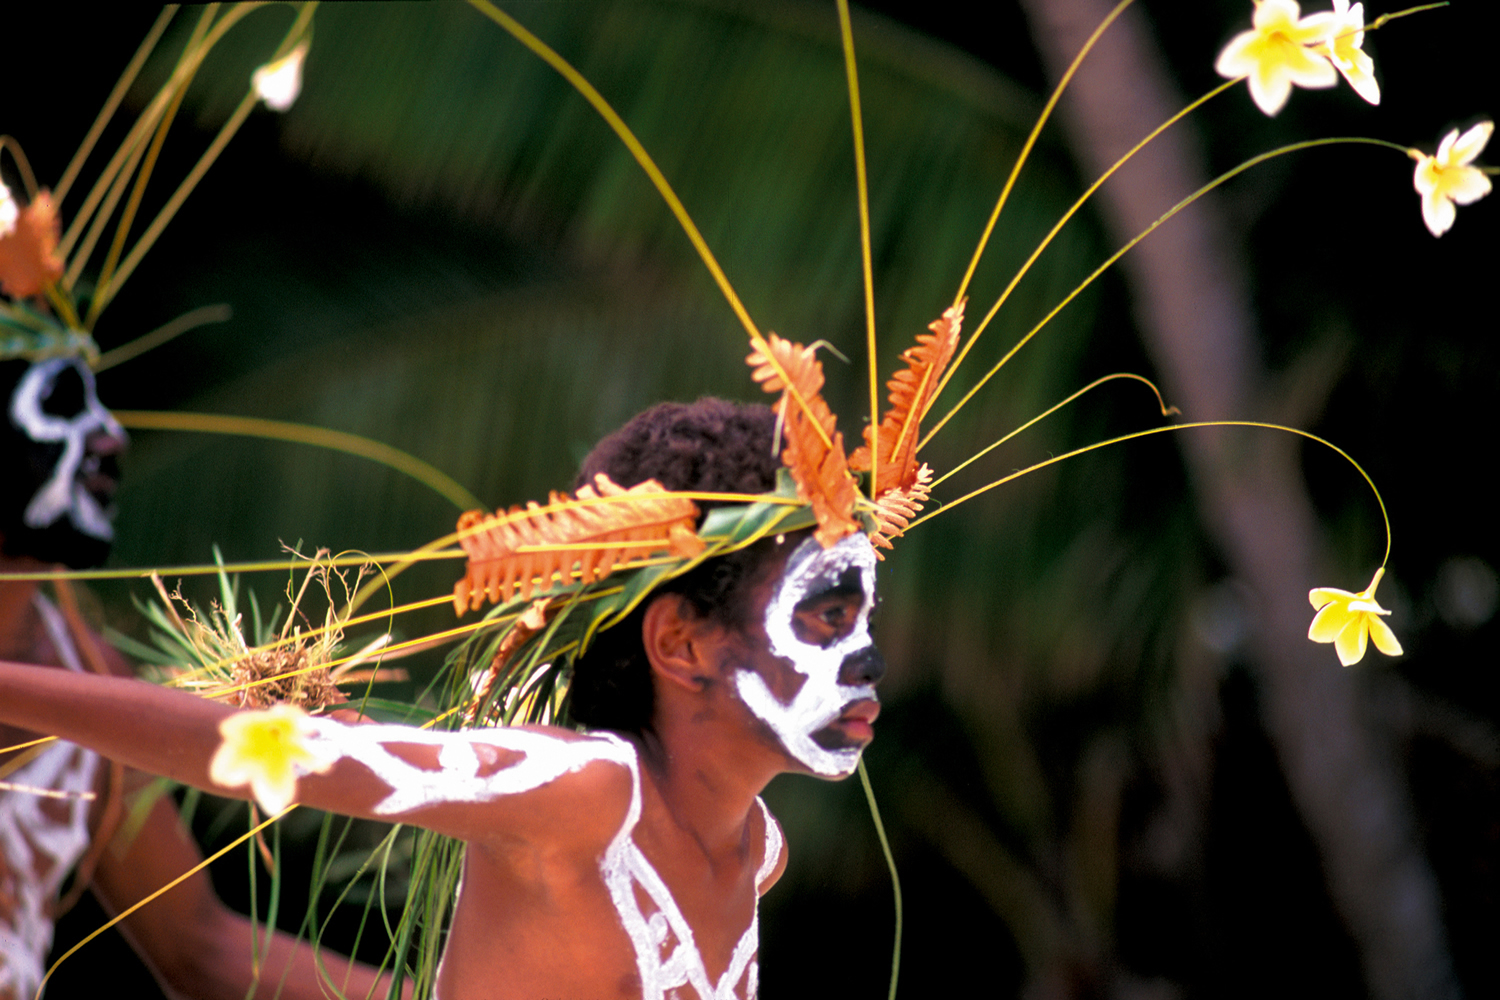 Wapan Boy Dancer, New Caledonia